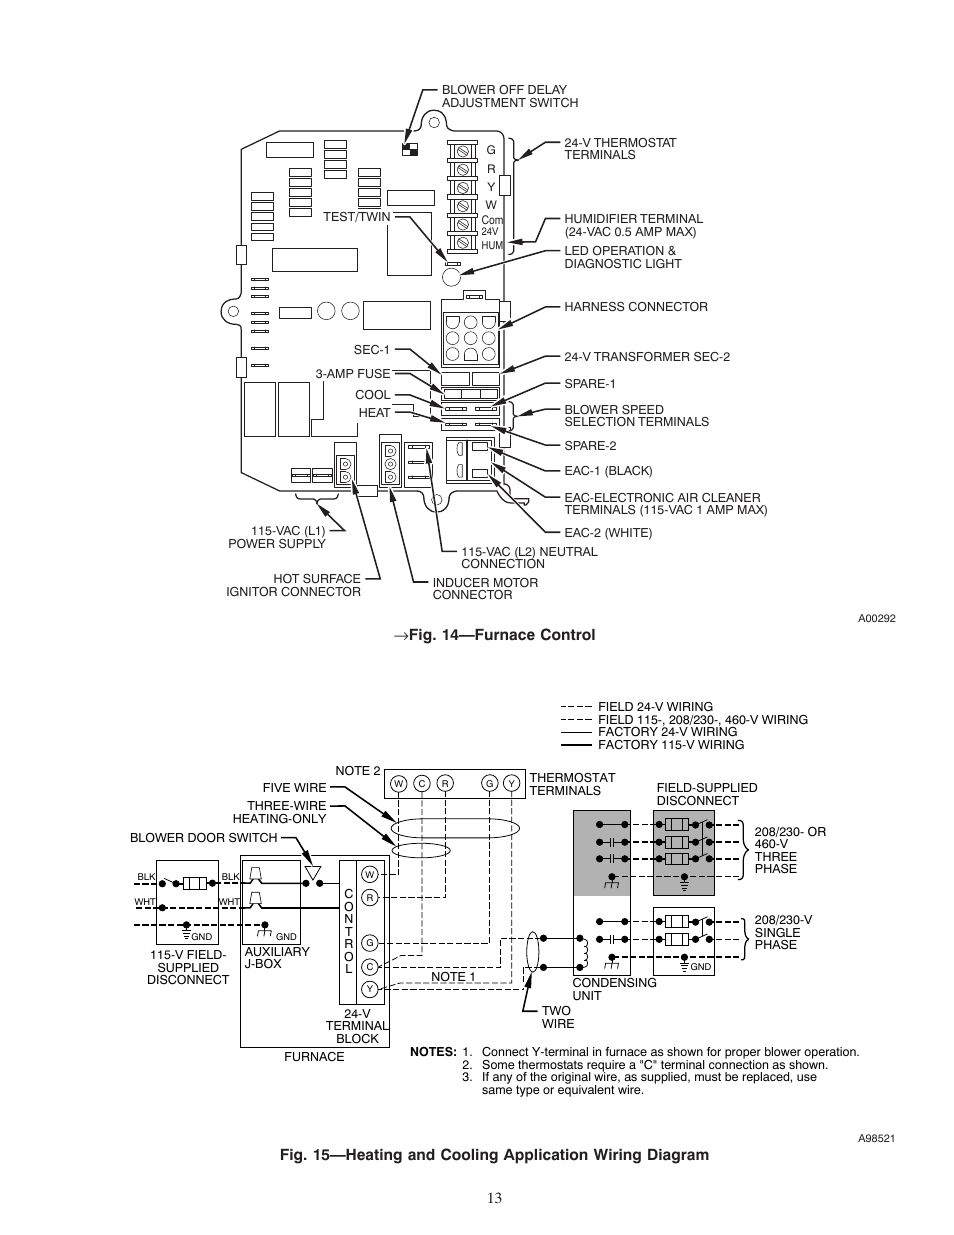 General Electric Furnace Wiring Diagram Eb158. General